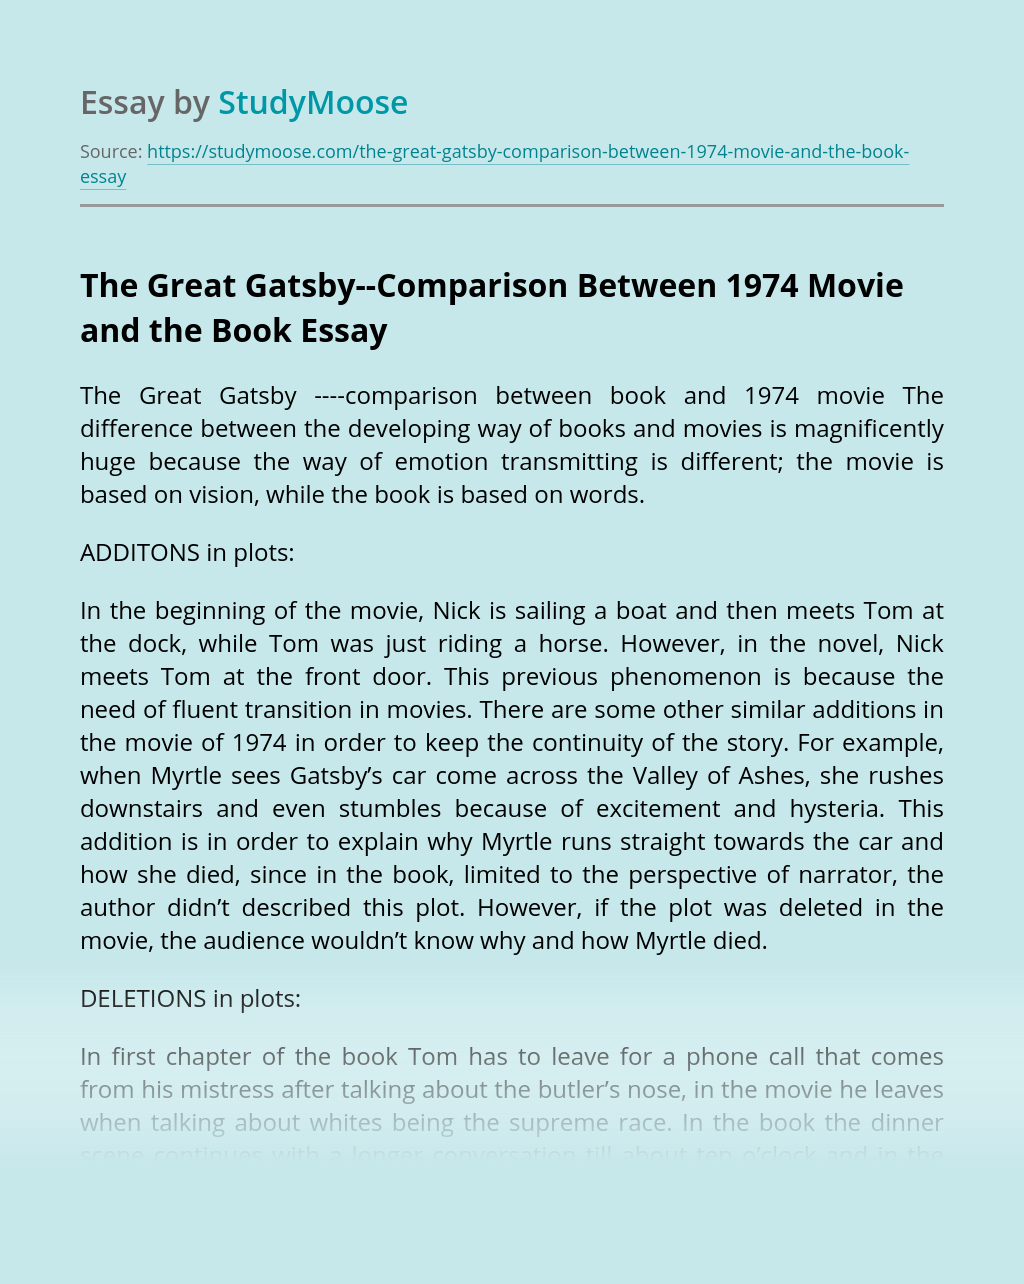 The Great Gatsby--Comparison Between 1974 Movie and the Book